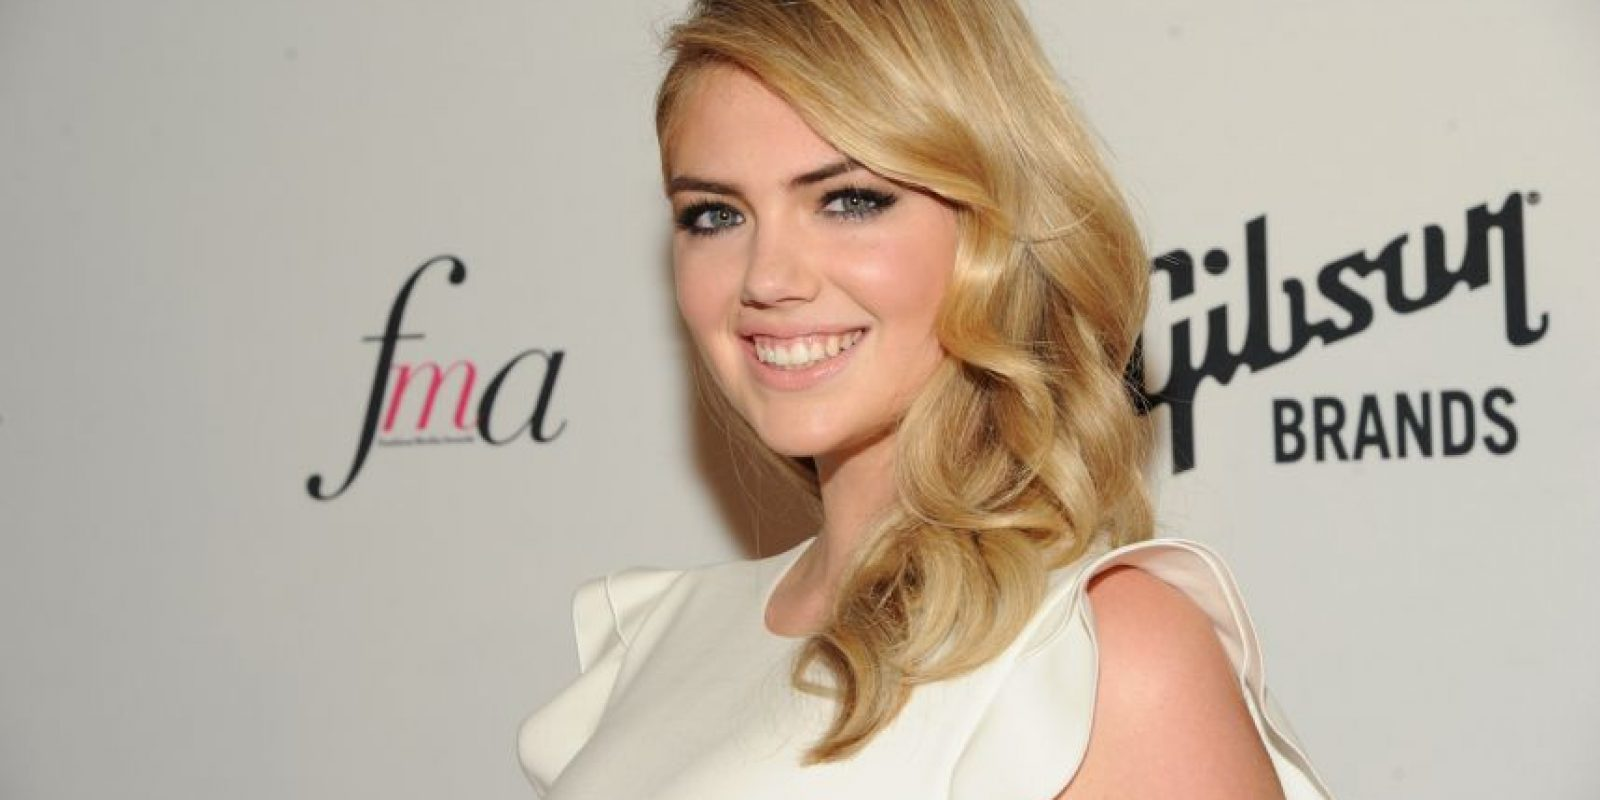 4. Kate Upton Foto: Getty Images